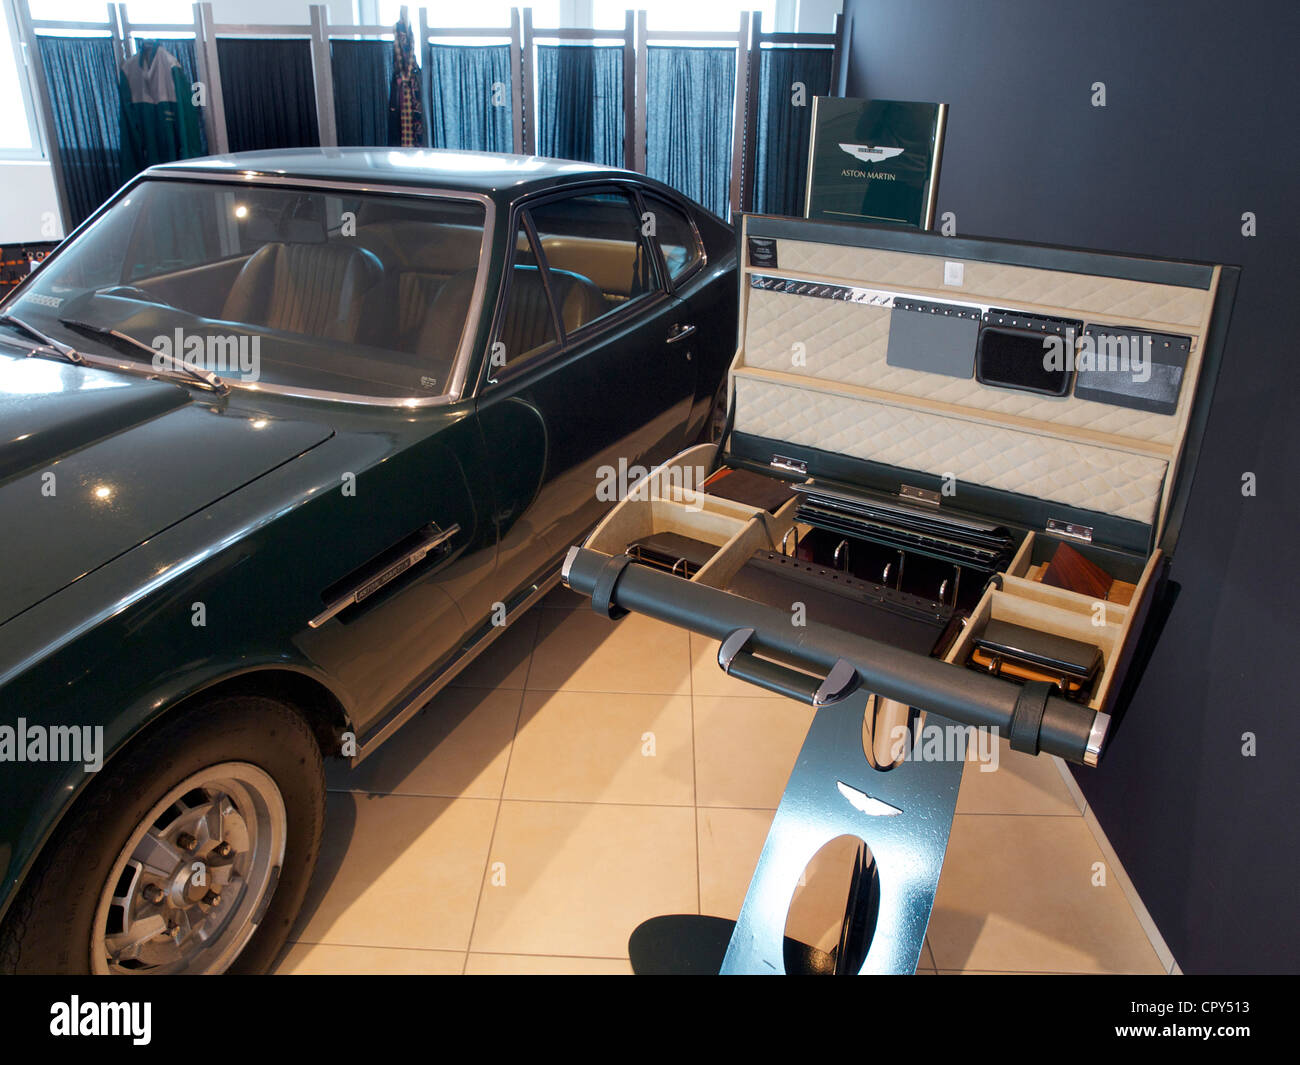 Classic Aston Martin DBS V8 sportscar at dealership with special suitcase showing some refurbishment options - Stock Image